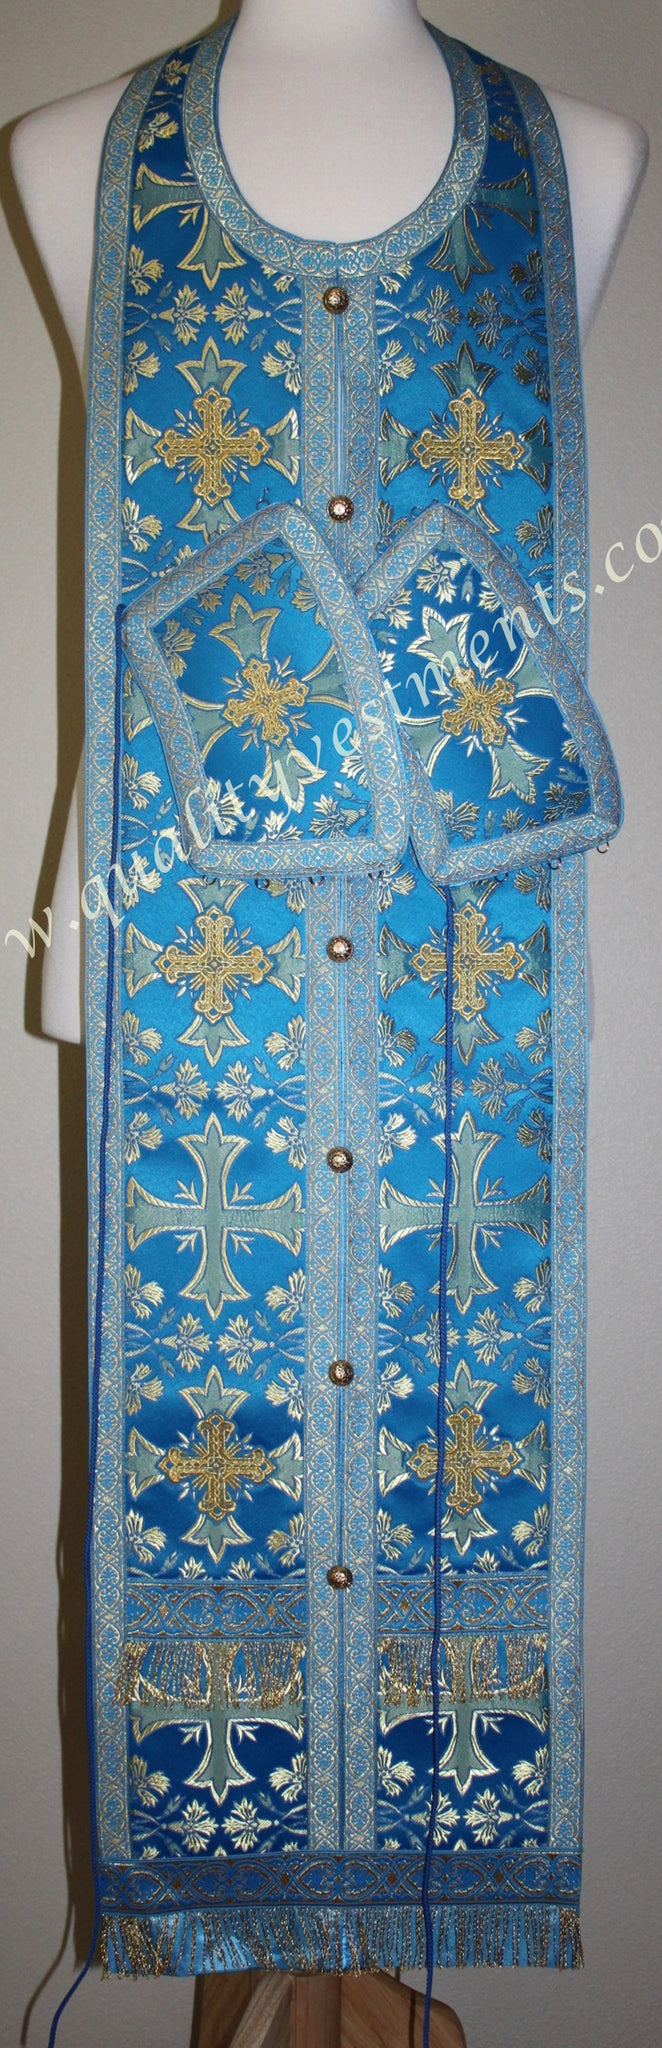 "Blue Communion set Stole and cuffs  43"" 110 cm READY TO SHIP!"